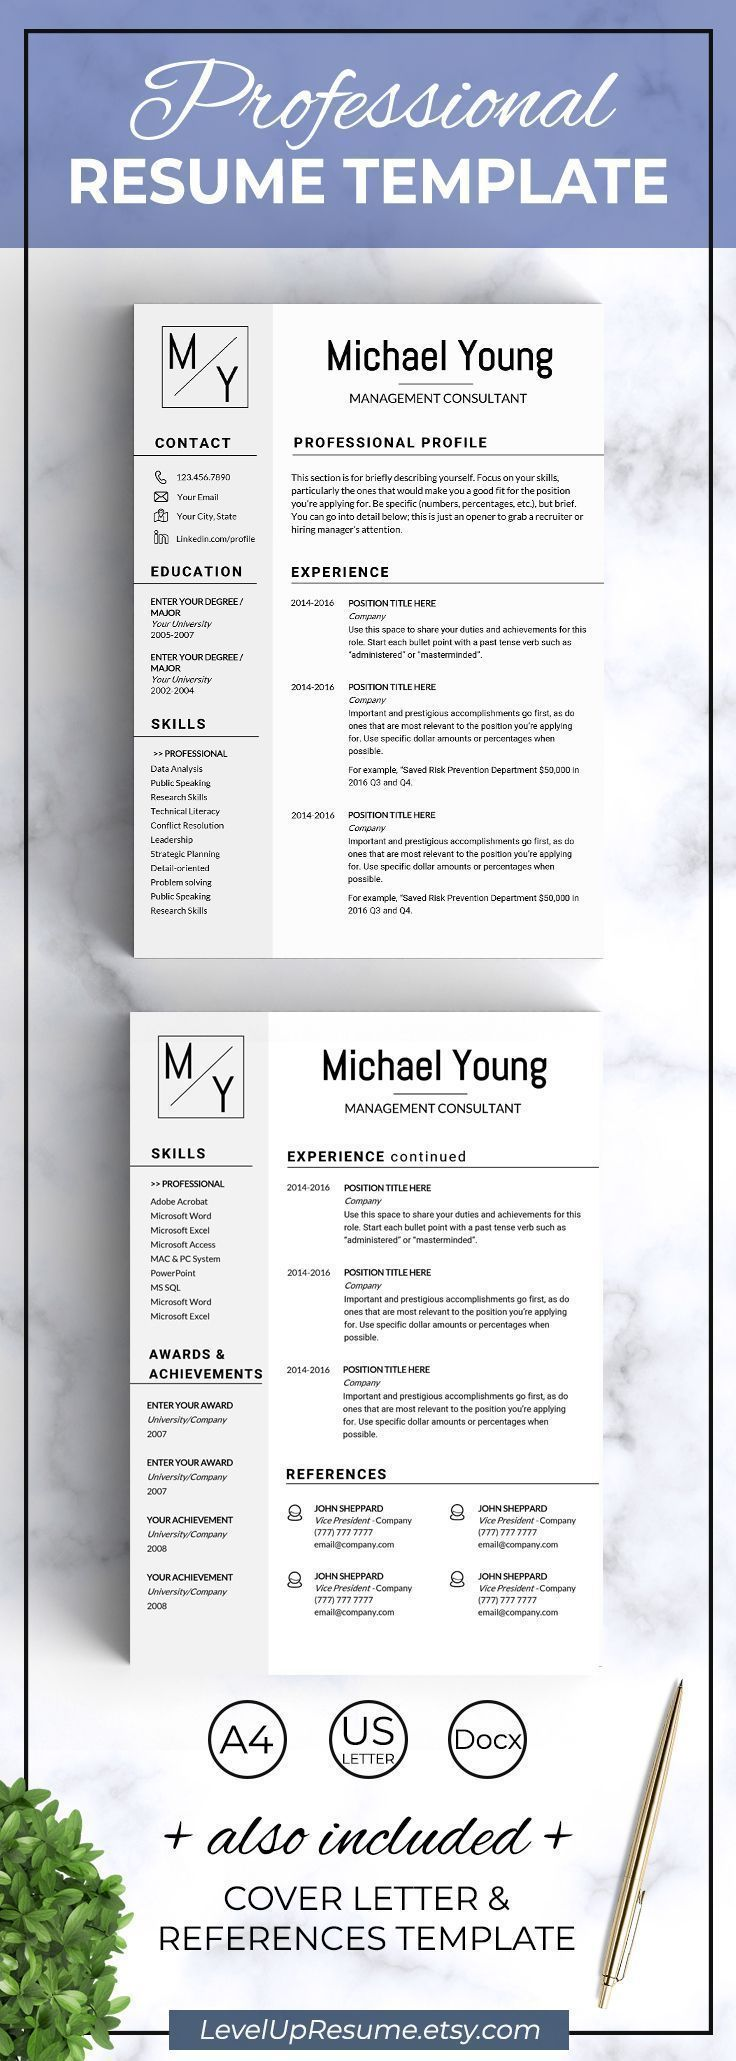 Modern resume template for MS Word. Professional resume design. Career advice. Job search. Get hired! Click on the link or save the pin to your board >>>>> #career #job #resume #resumetemplate #girlboss #successfulwomen